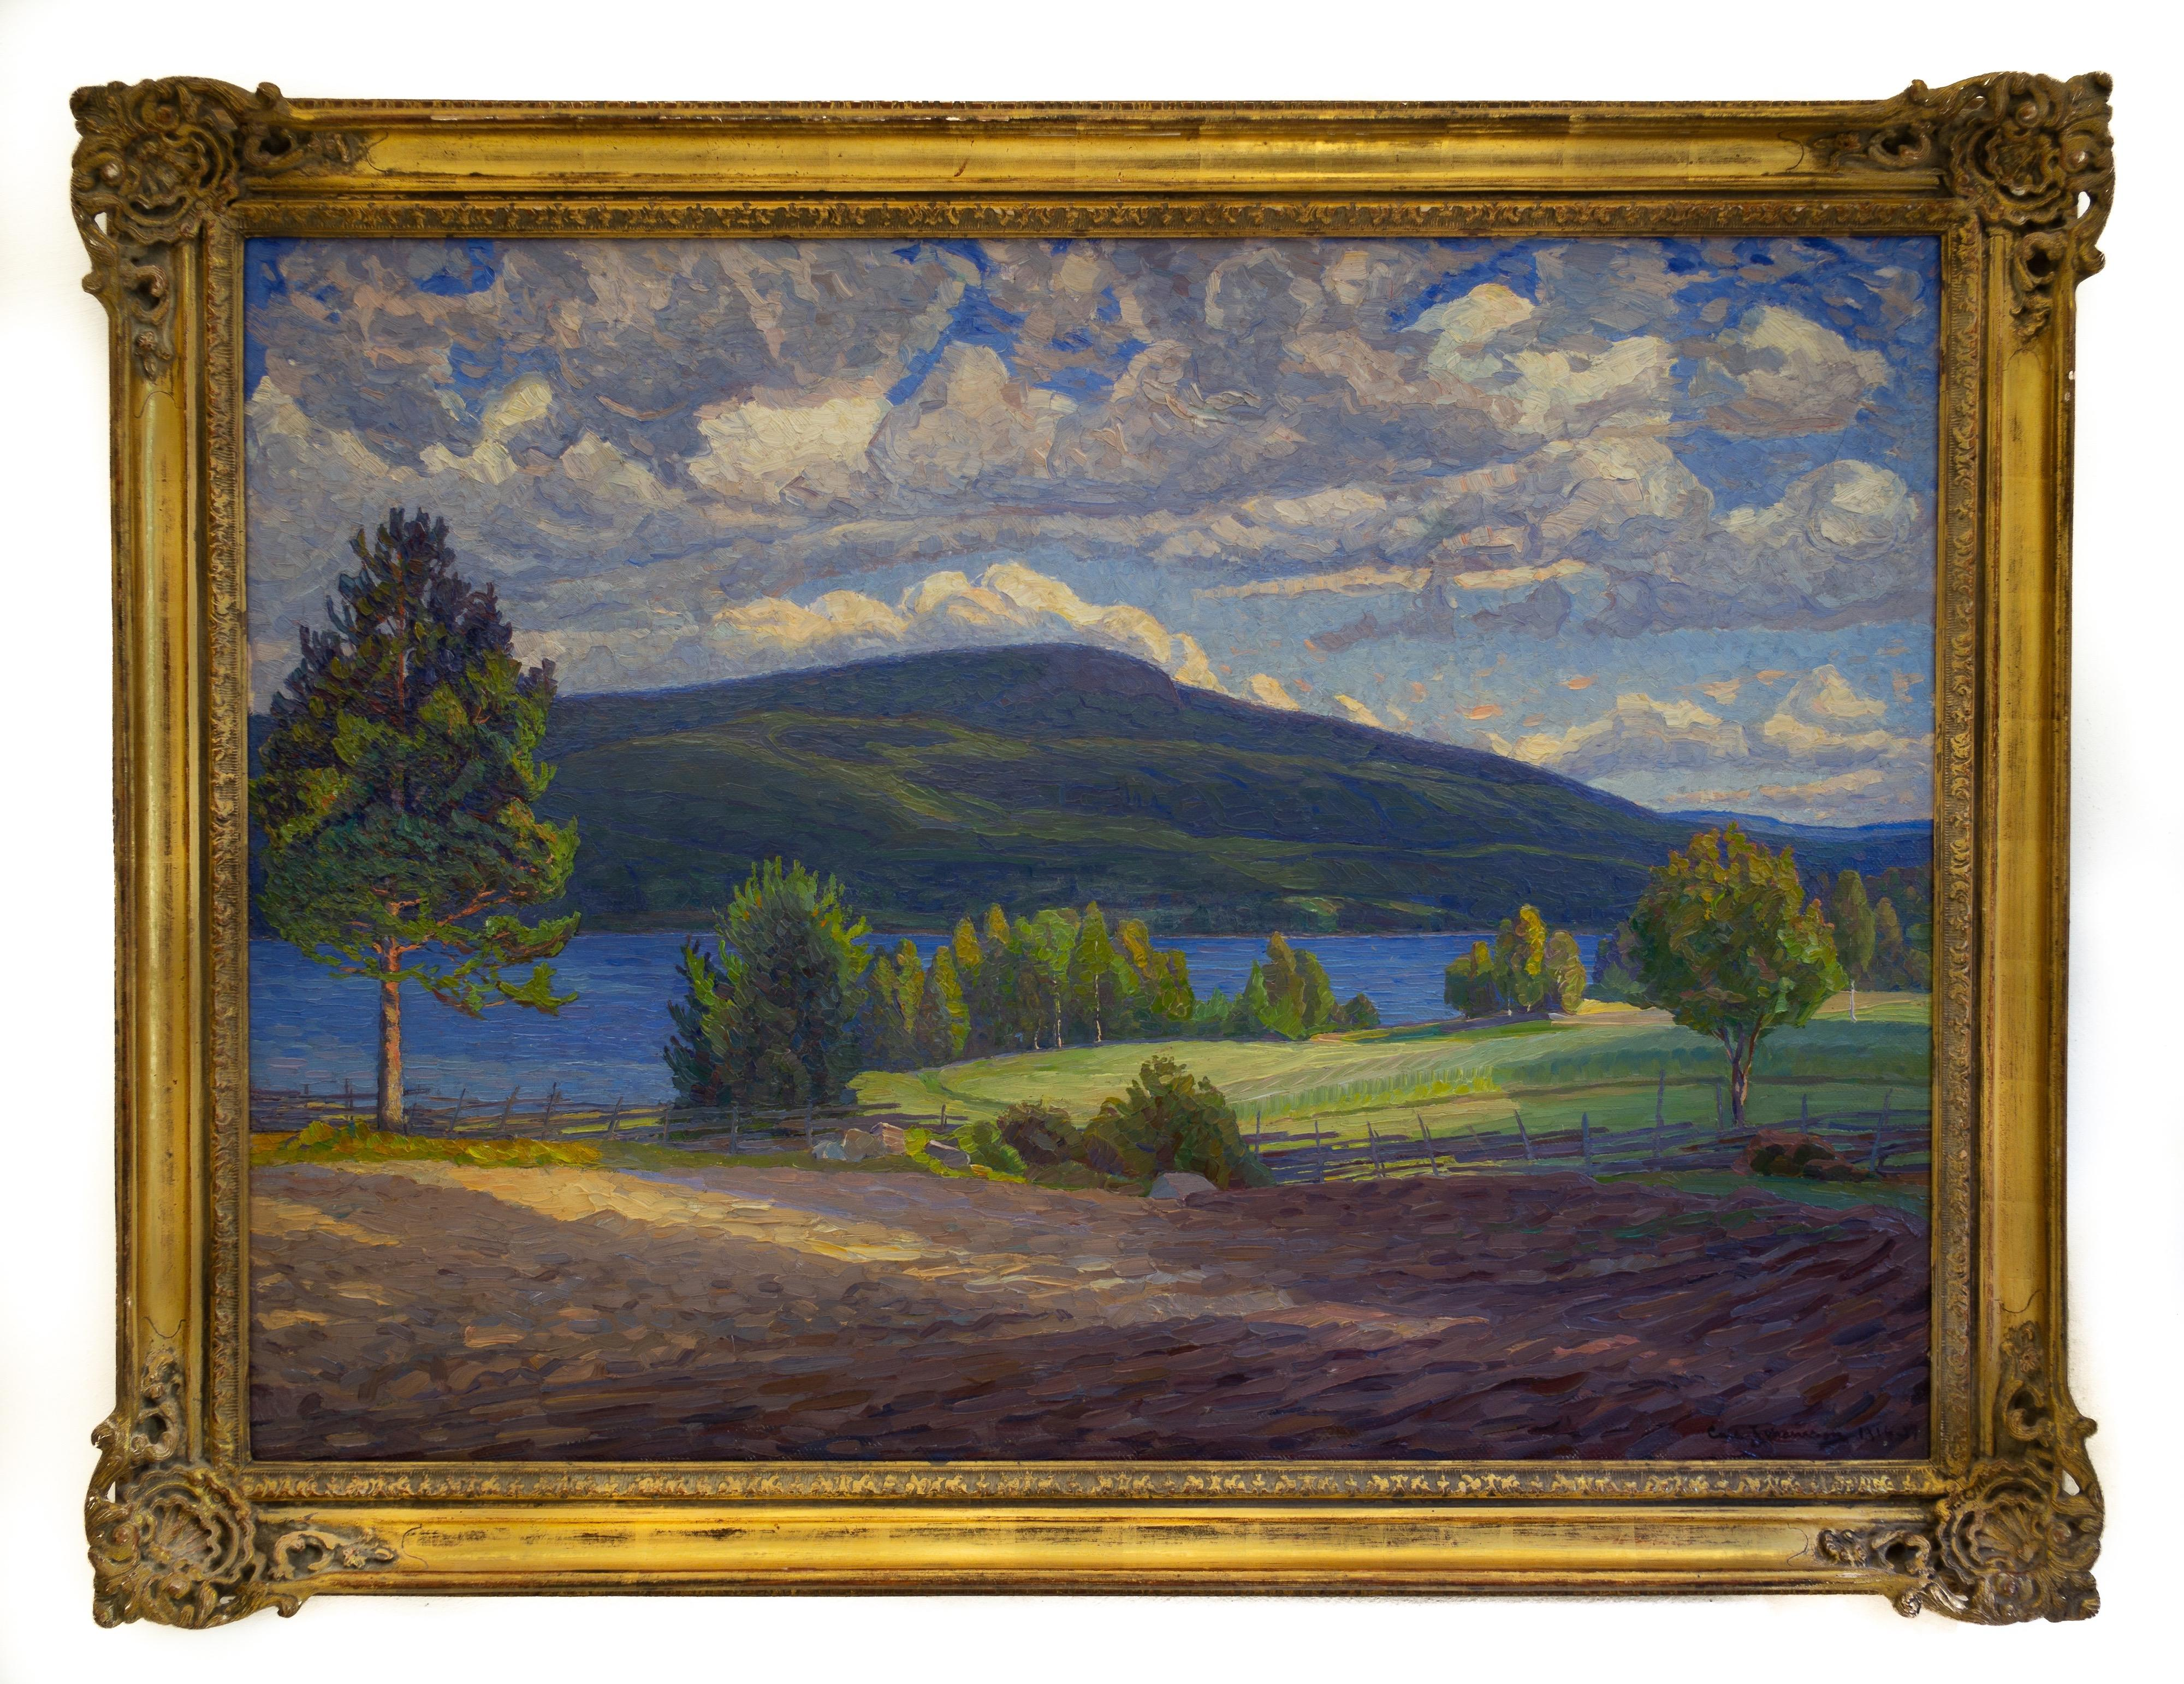 Summer Landscape From Sweden by Carl Johansson, Painted 1916, Oil on Canvas